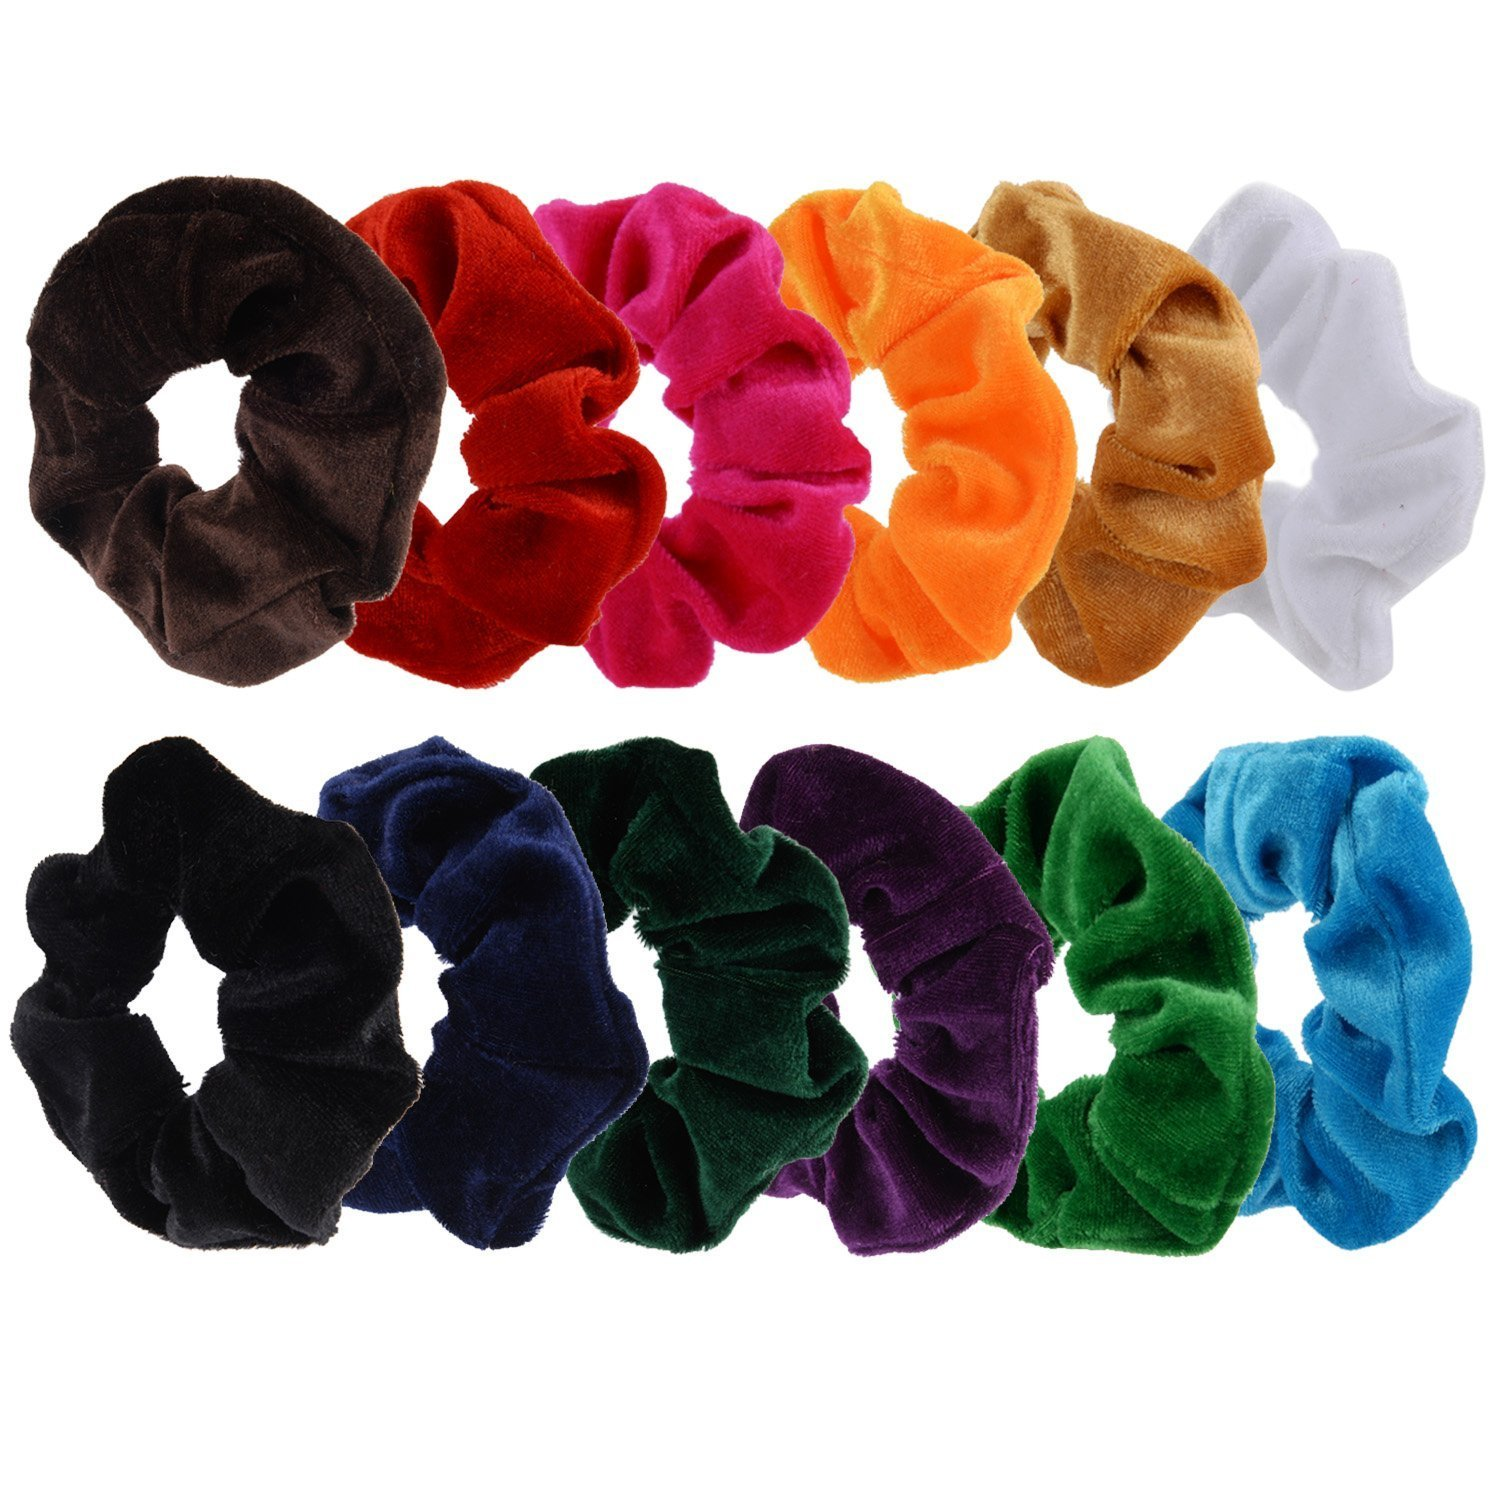 12 Pack Hair Scrunchies Velvet Scrunchy Bobbles Elastic Hair Bands, 12 Colors Mudder